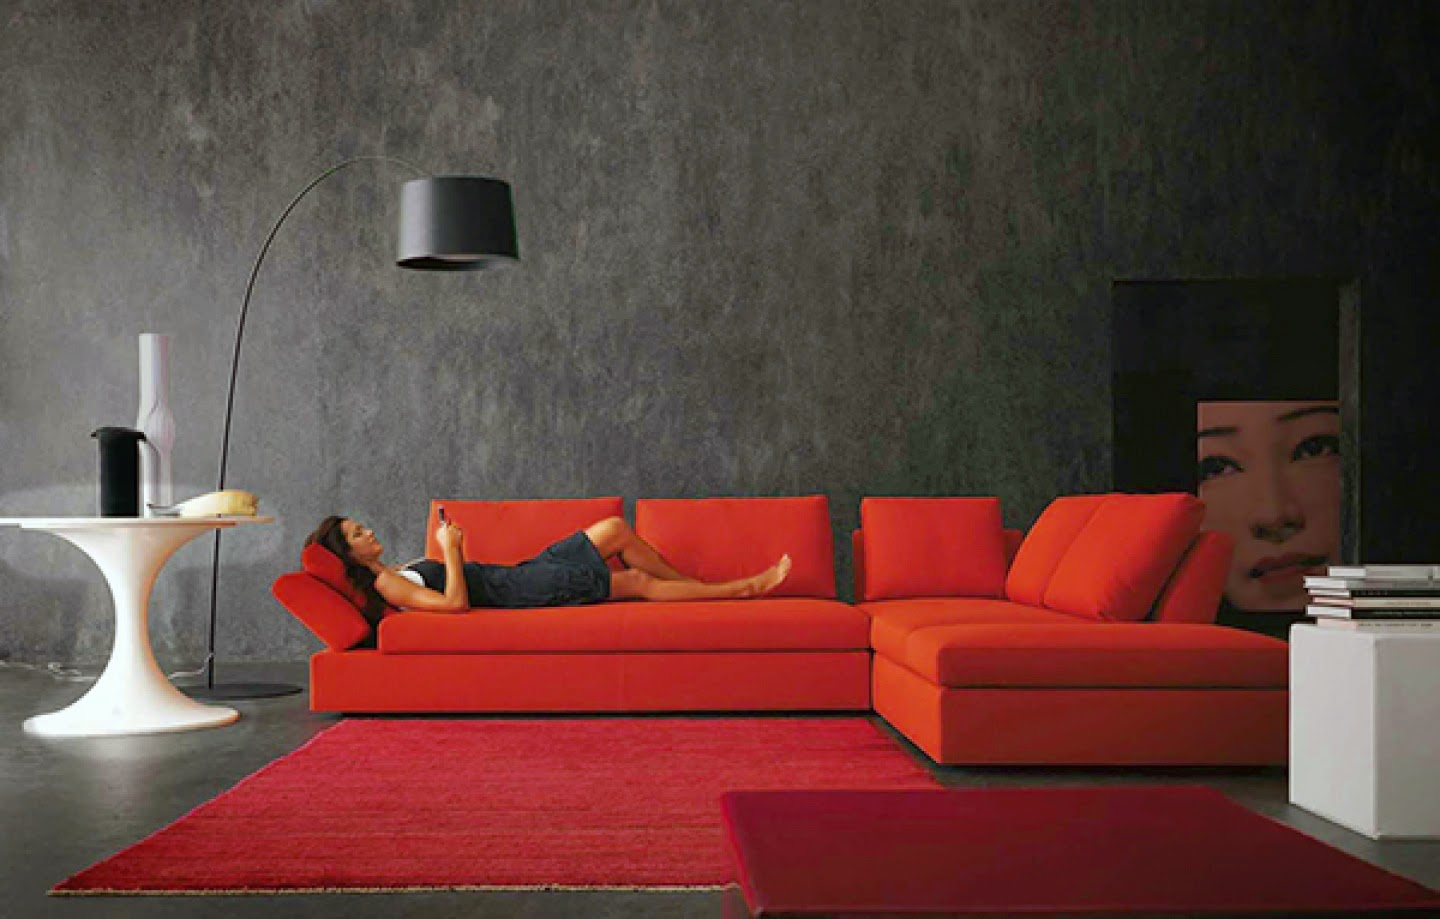 Muebles x muebles decorar la sala en color rojo - Decoracion de muebles de sala ...